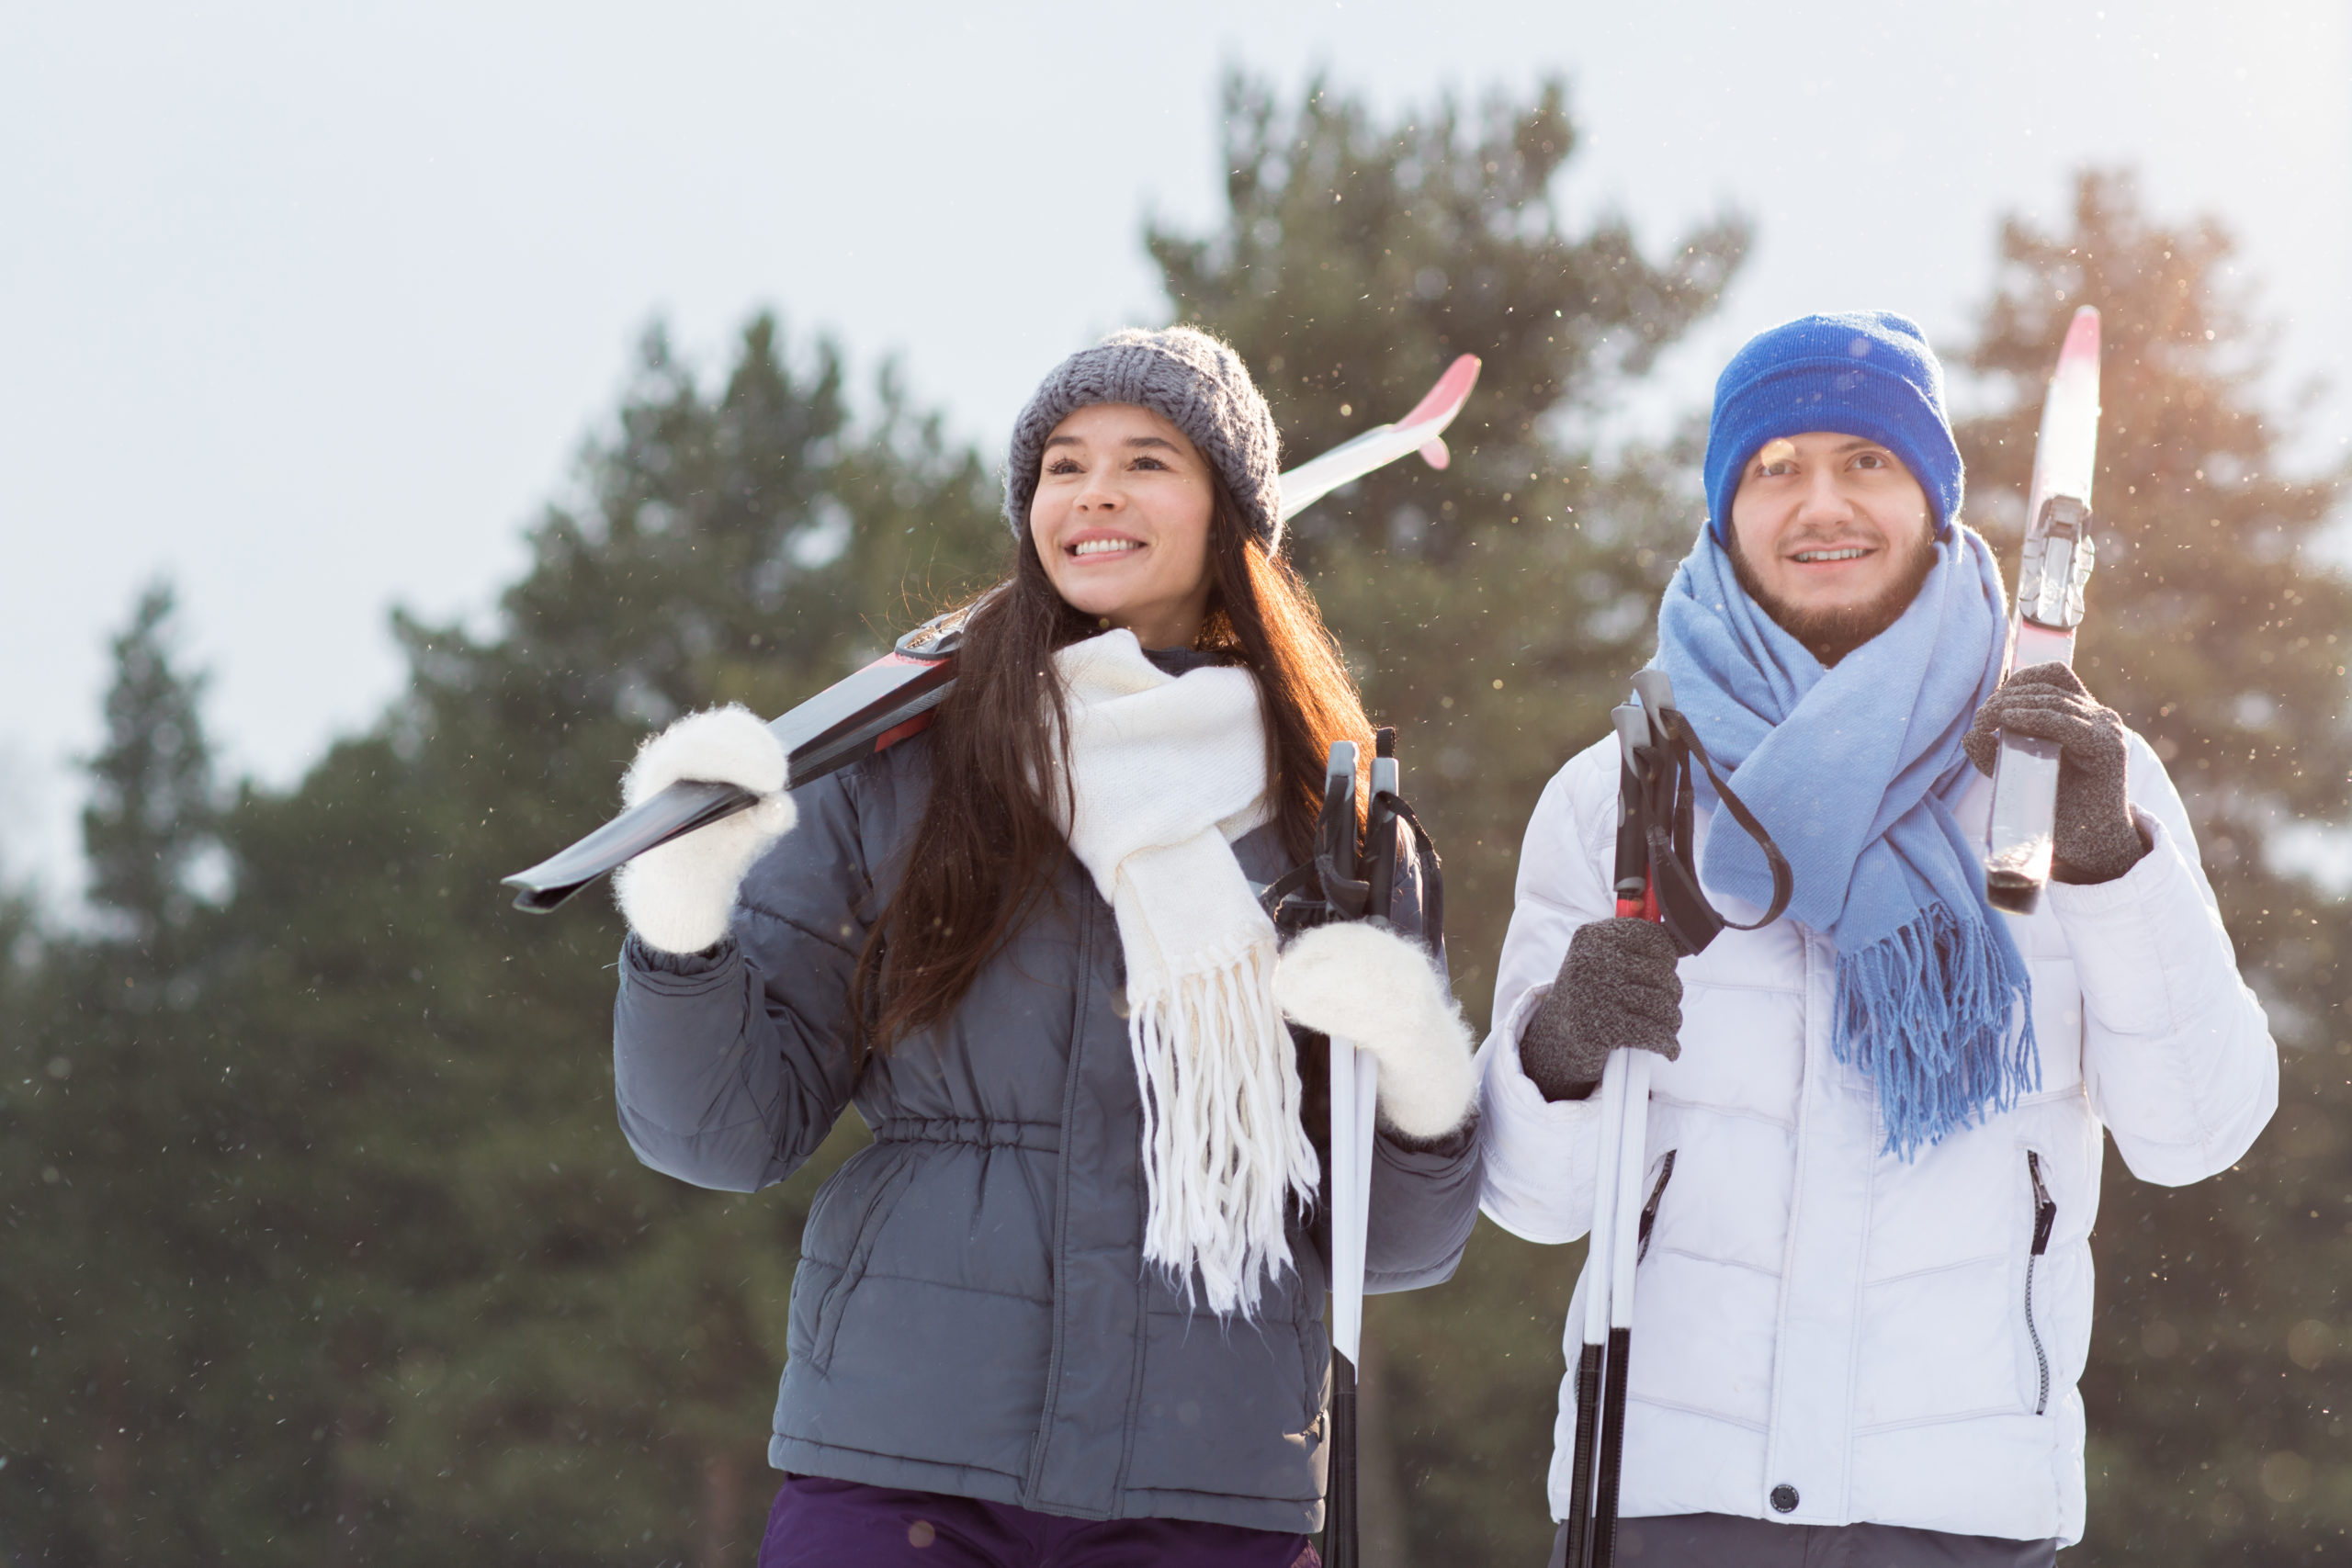 A man and woman with ski equipment